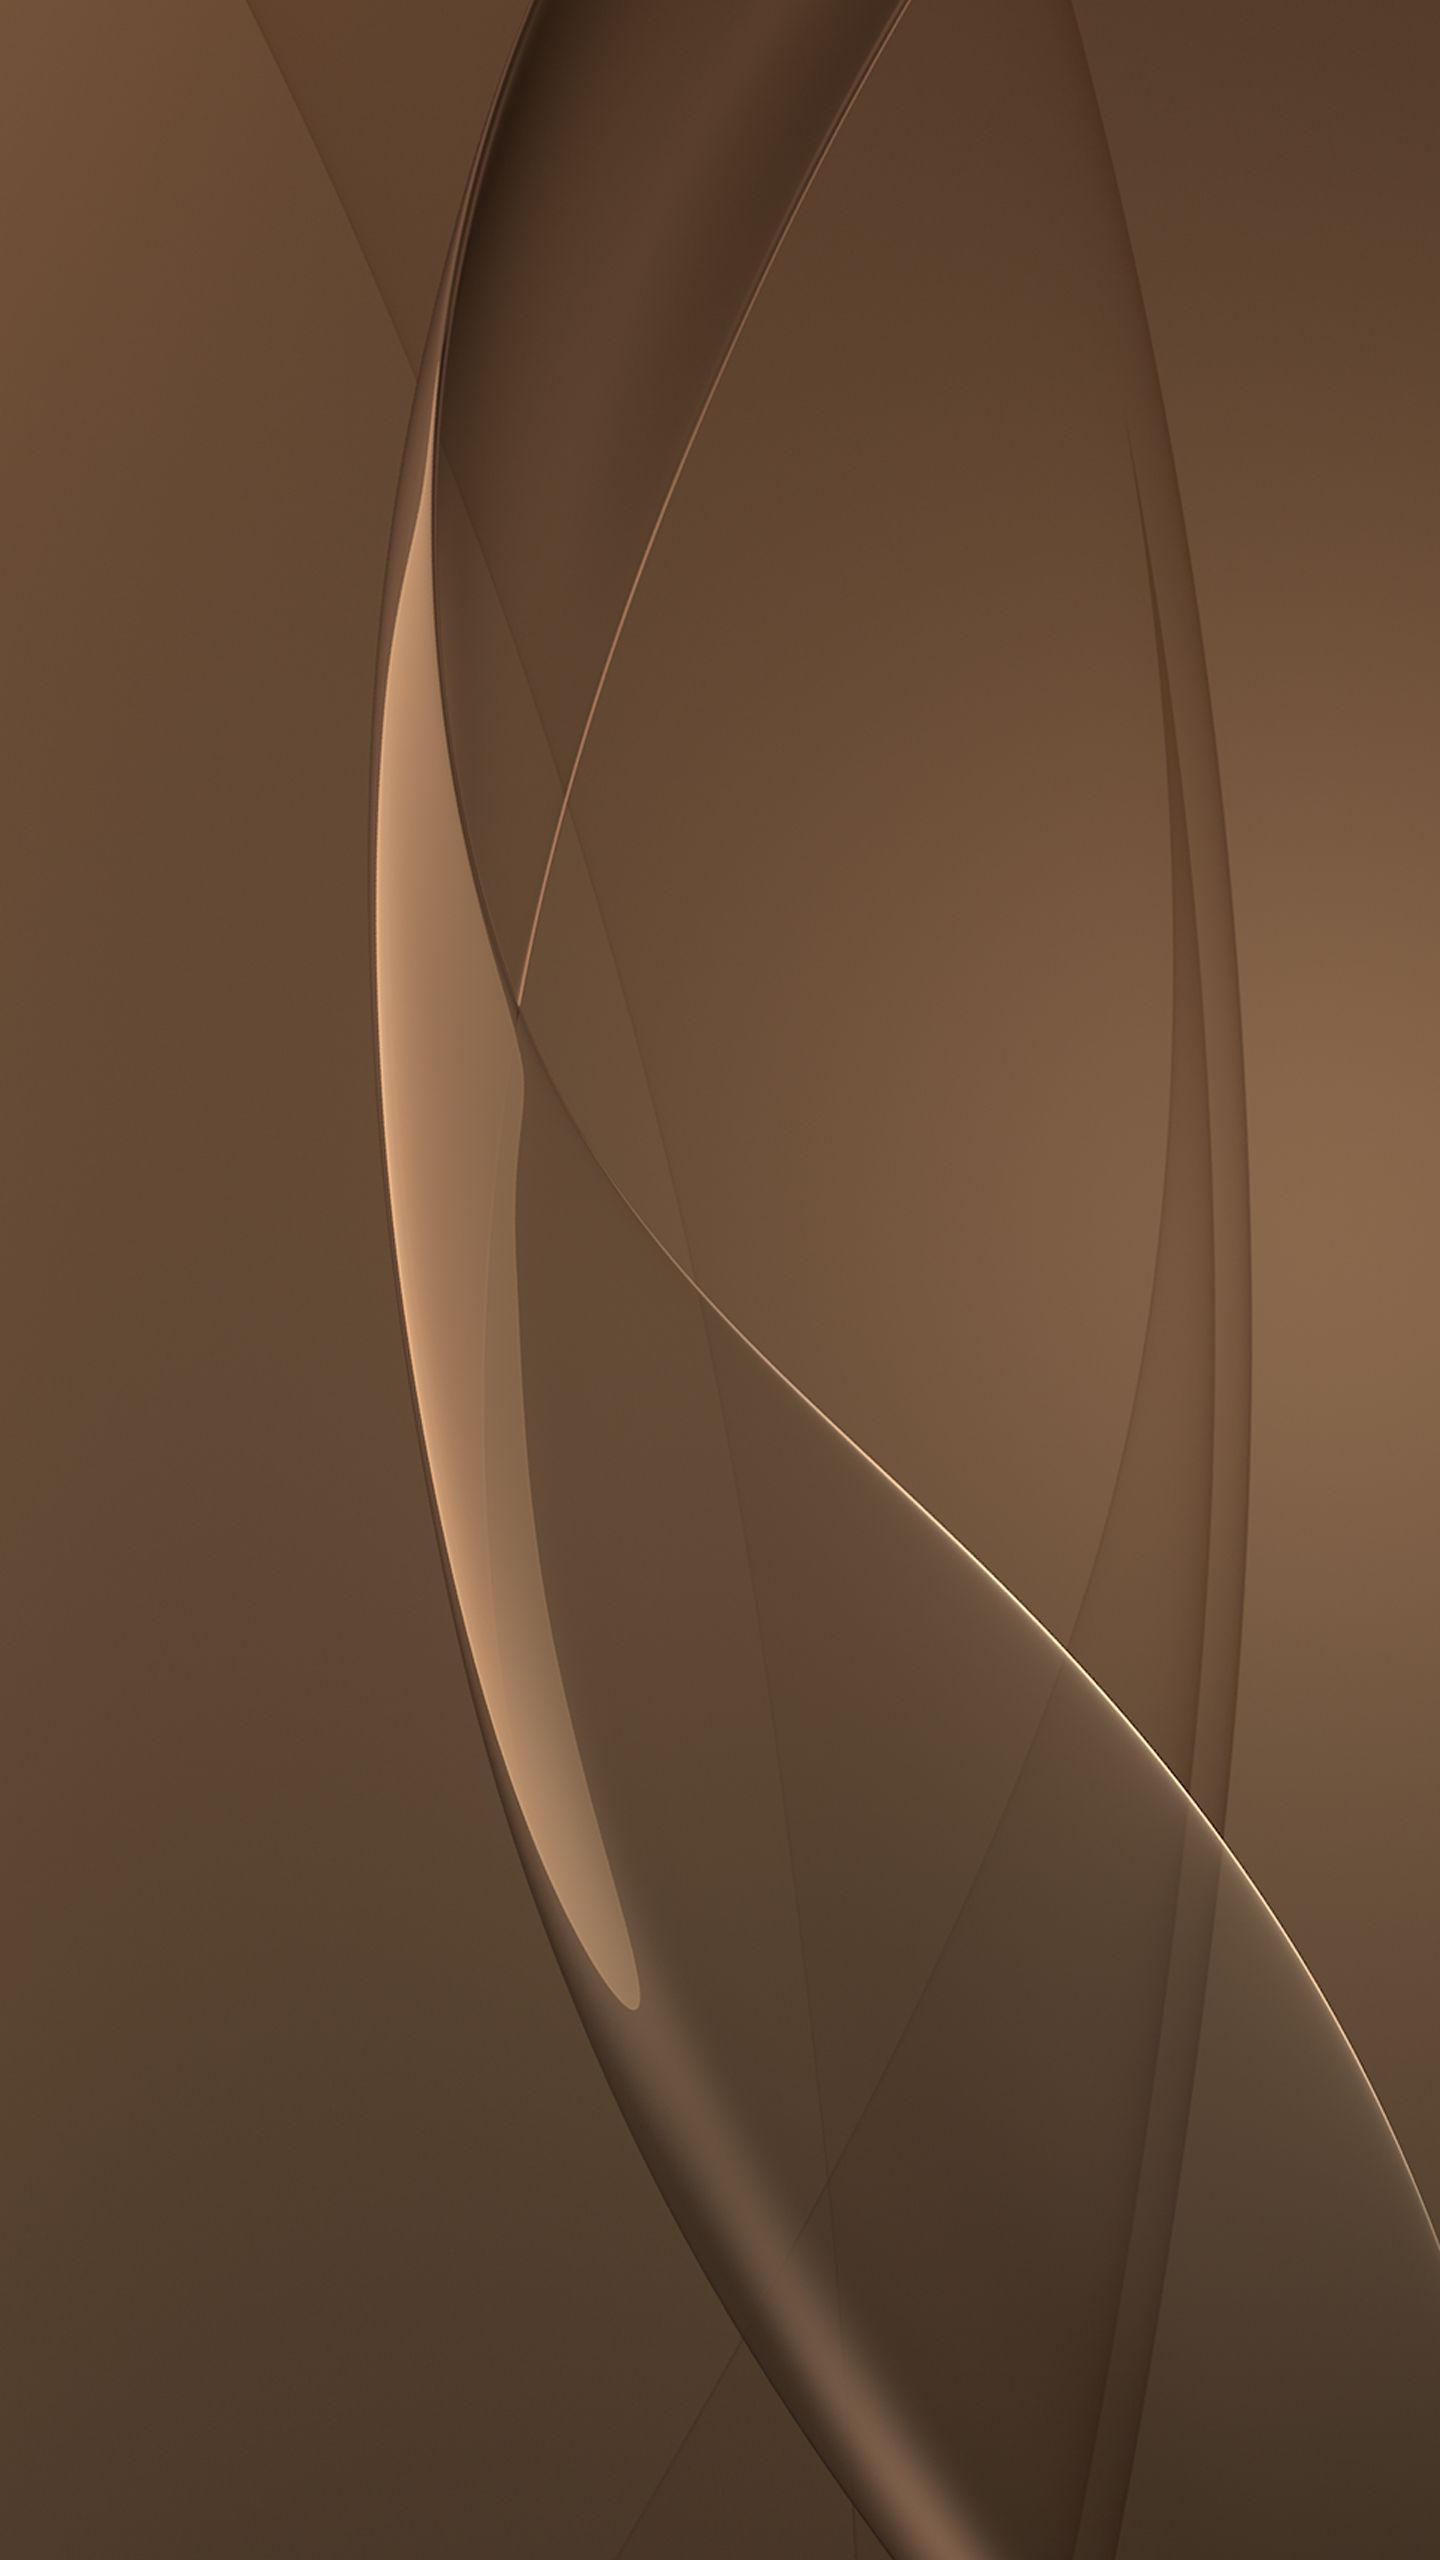 Brown Wallpaper Striped HD Desktop